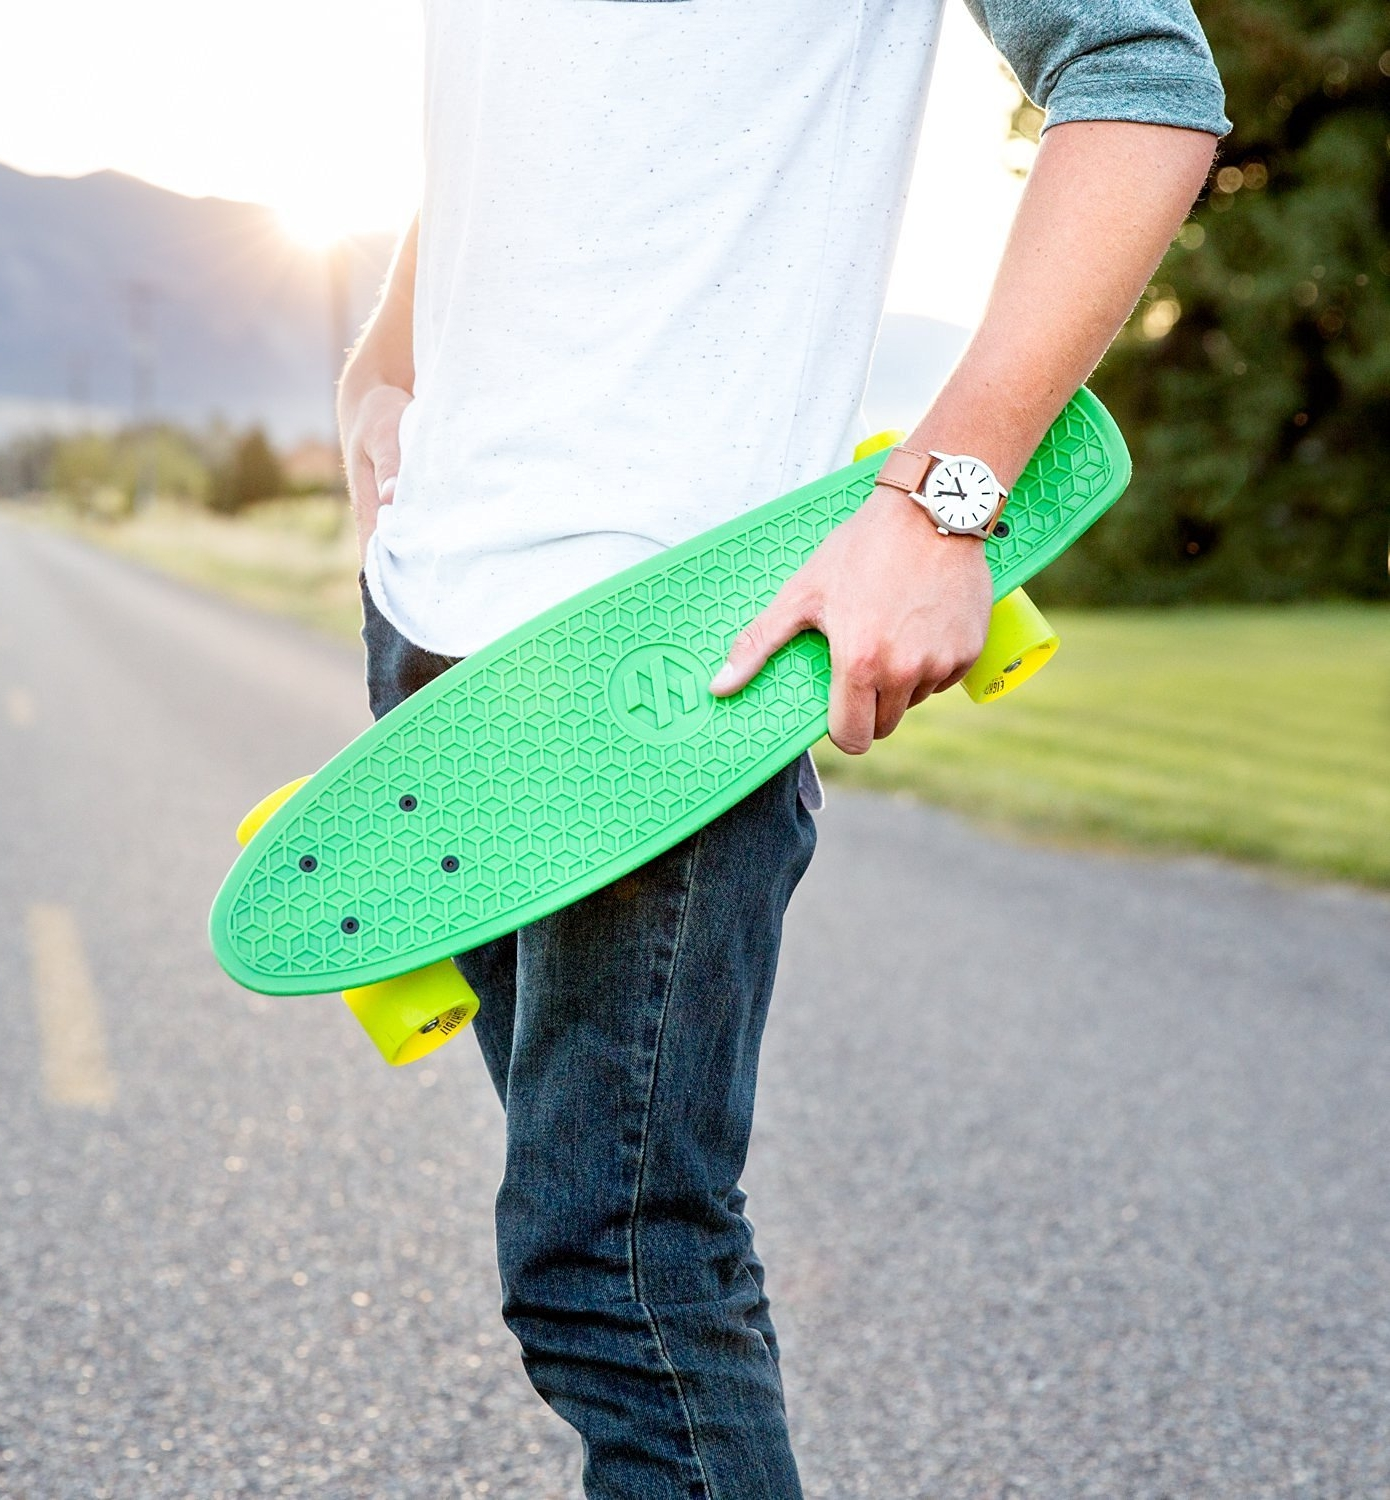 Eightbit Toys - Pennyboard Design, Branding & Colorways